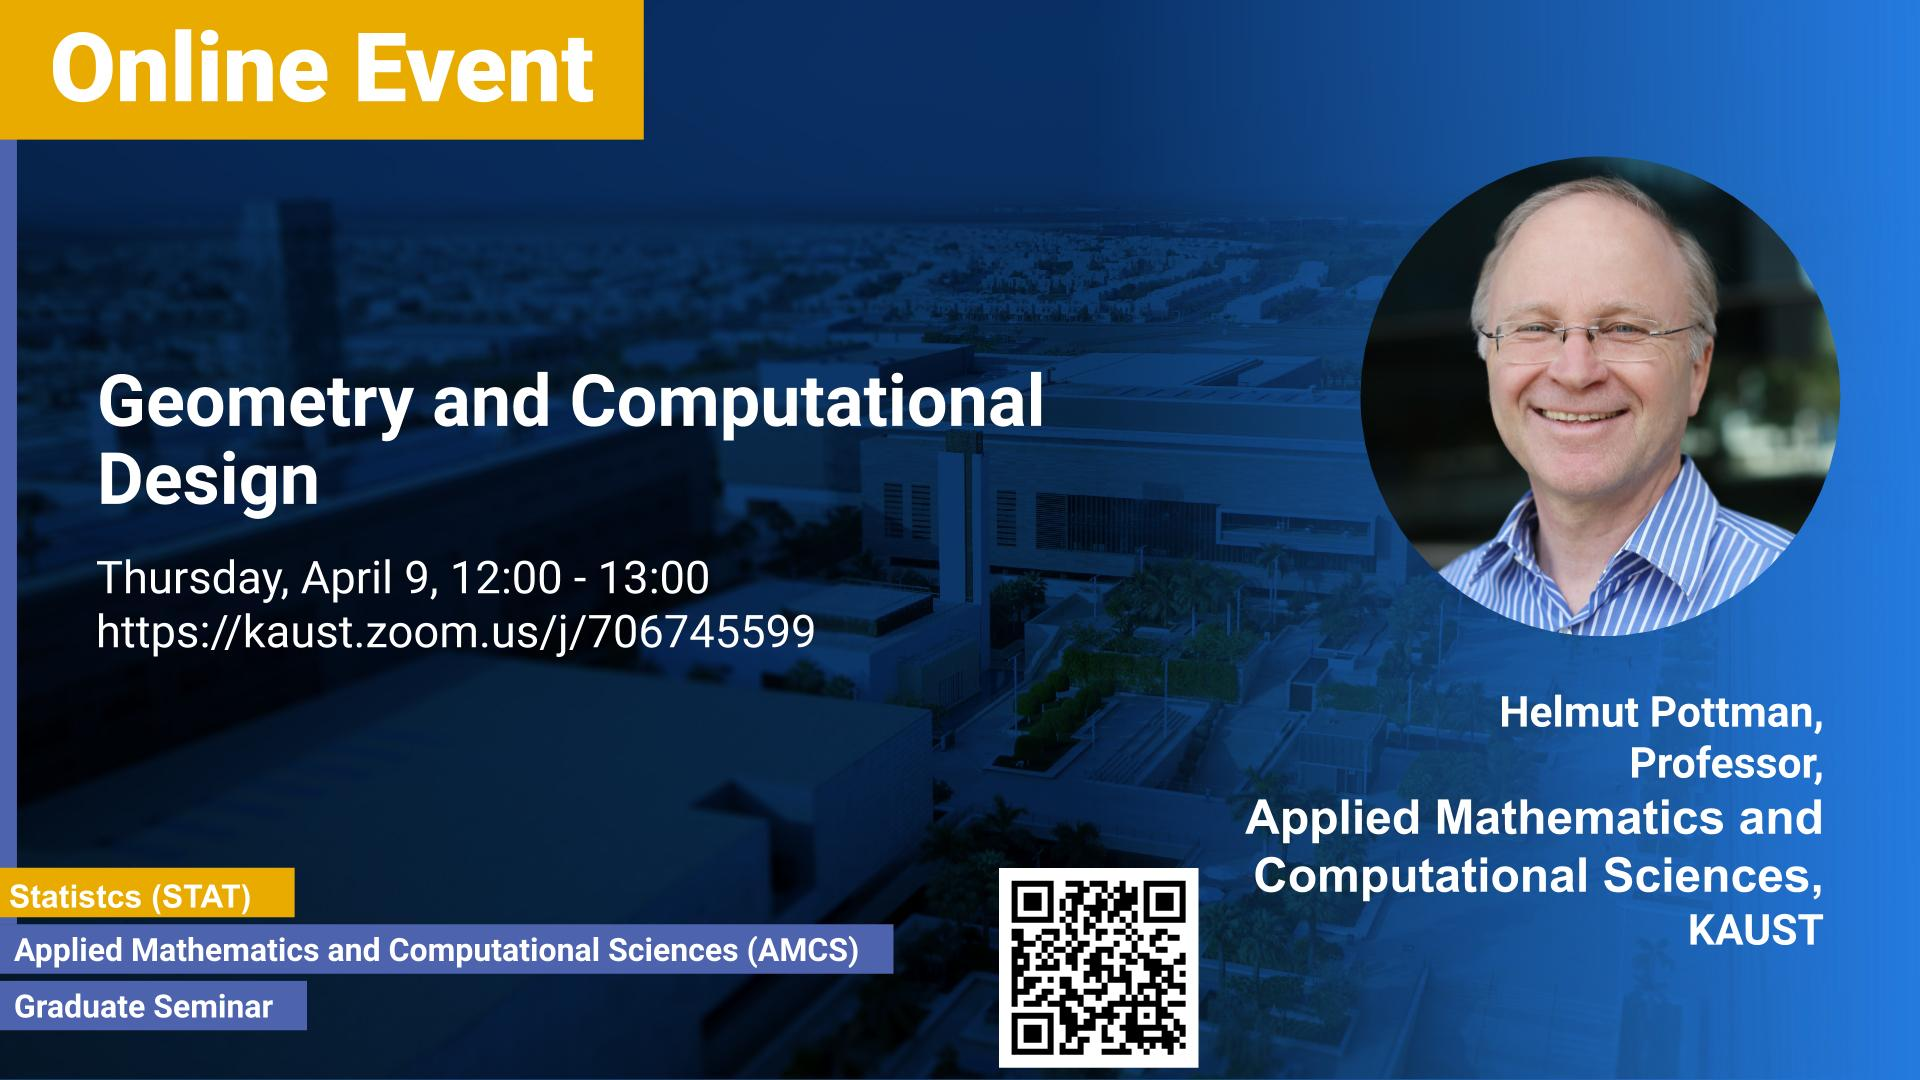 KAUST-CEMSE-AMCS-STAT-Graduate-Seminar-Helmut-Pottman-Geometry and Computational Design